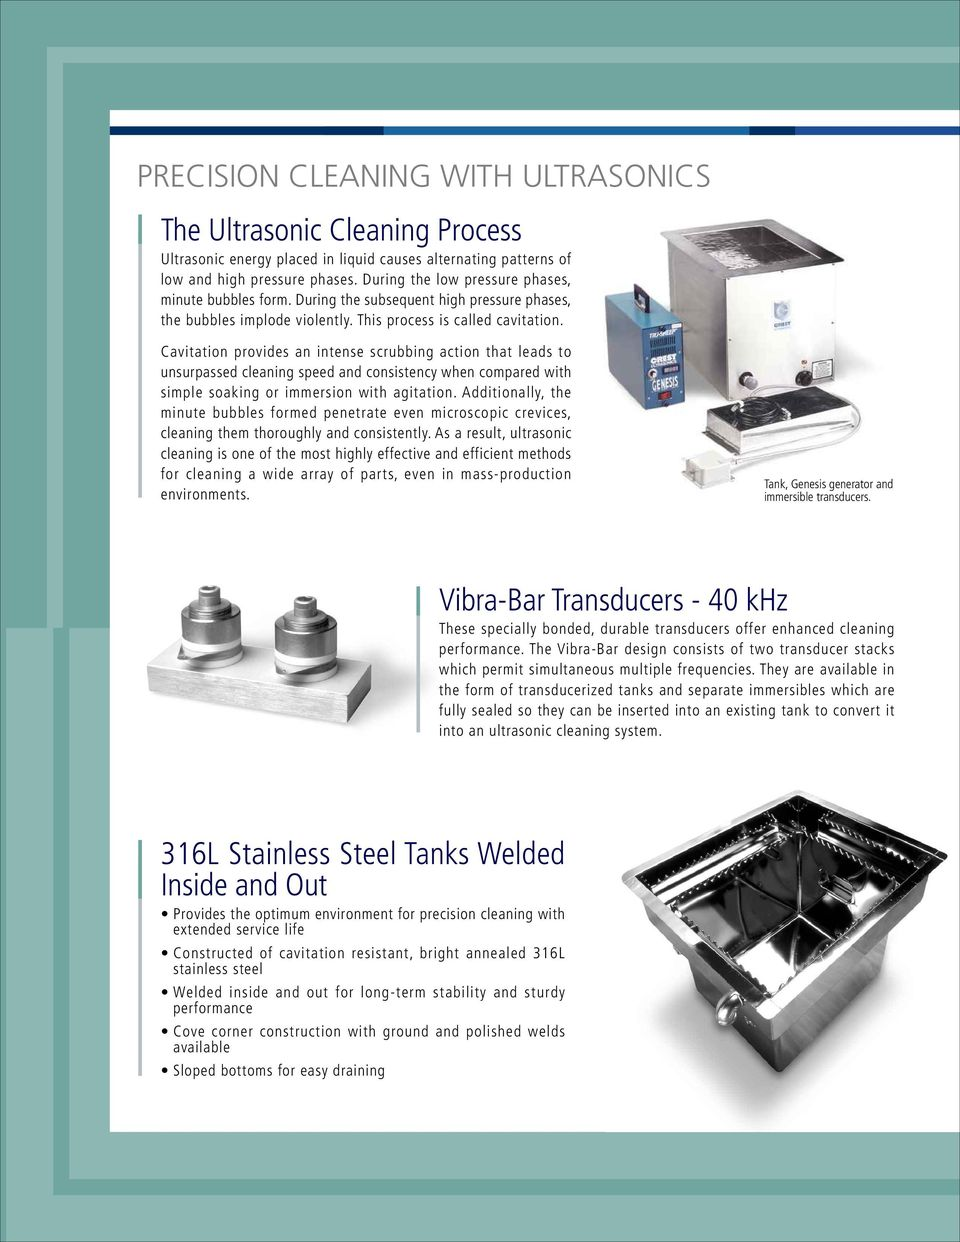 Ultrasonic Tanks Generators Immersible And Push Pull Transducers Specification Of Generator Circuit Pcb Type Cavitation Provides An Intense Scrubbing Action That Leads To Unsurpassed Cleaning Speed Consistency When Compared